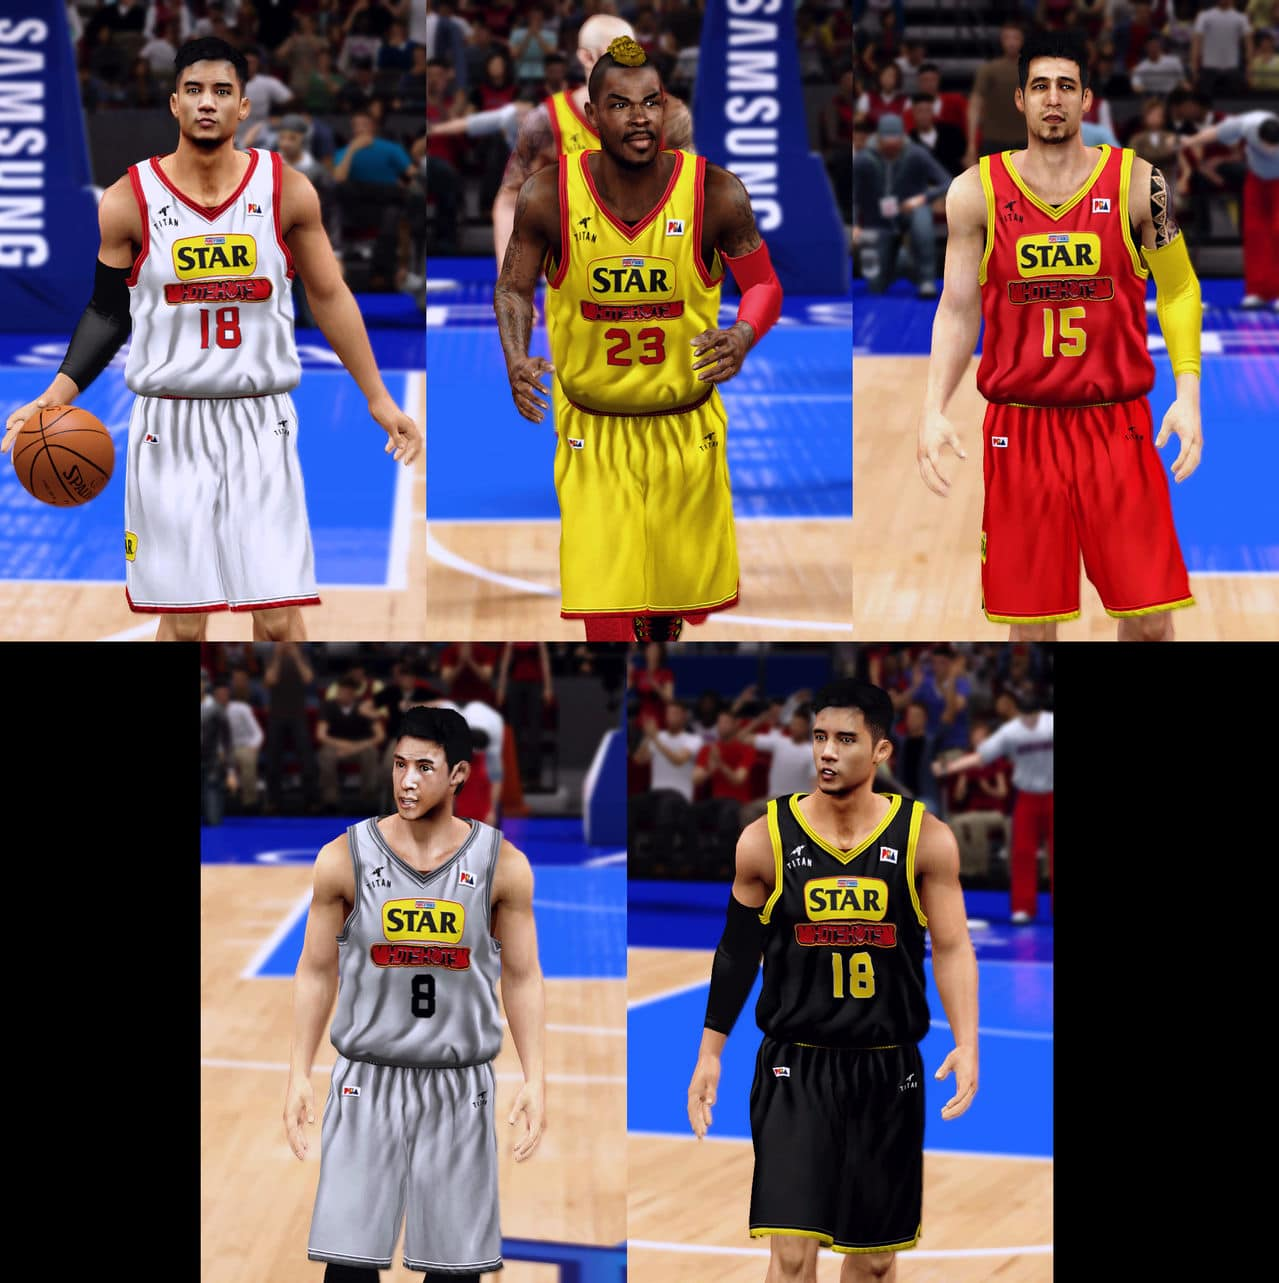 MAJOR BASKETBALL LEAGUE 2K14 - Version 4.1 RELEASED!!! PUR